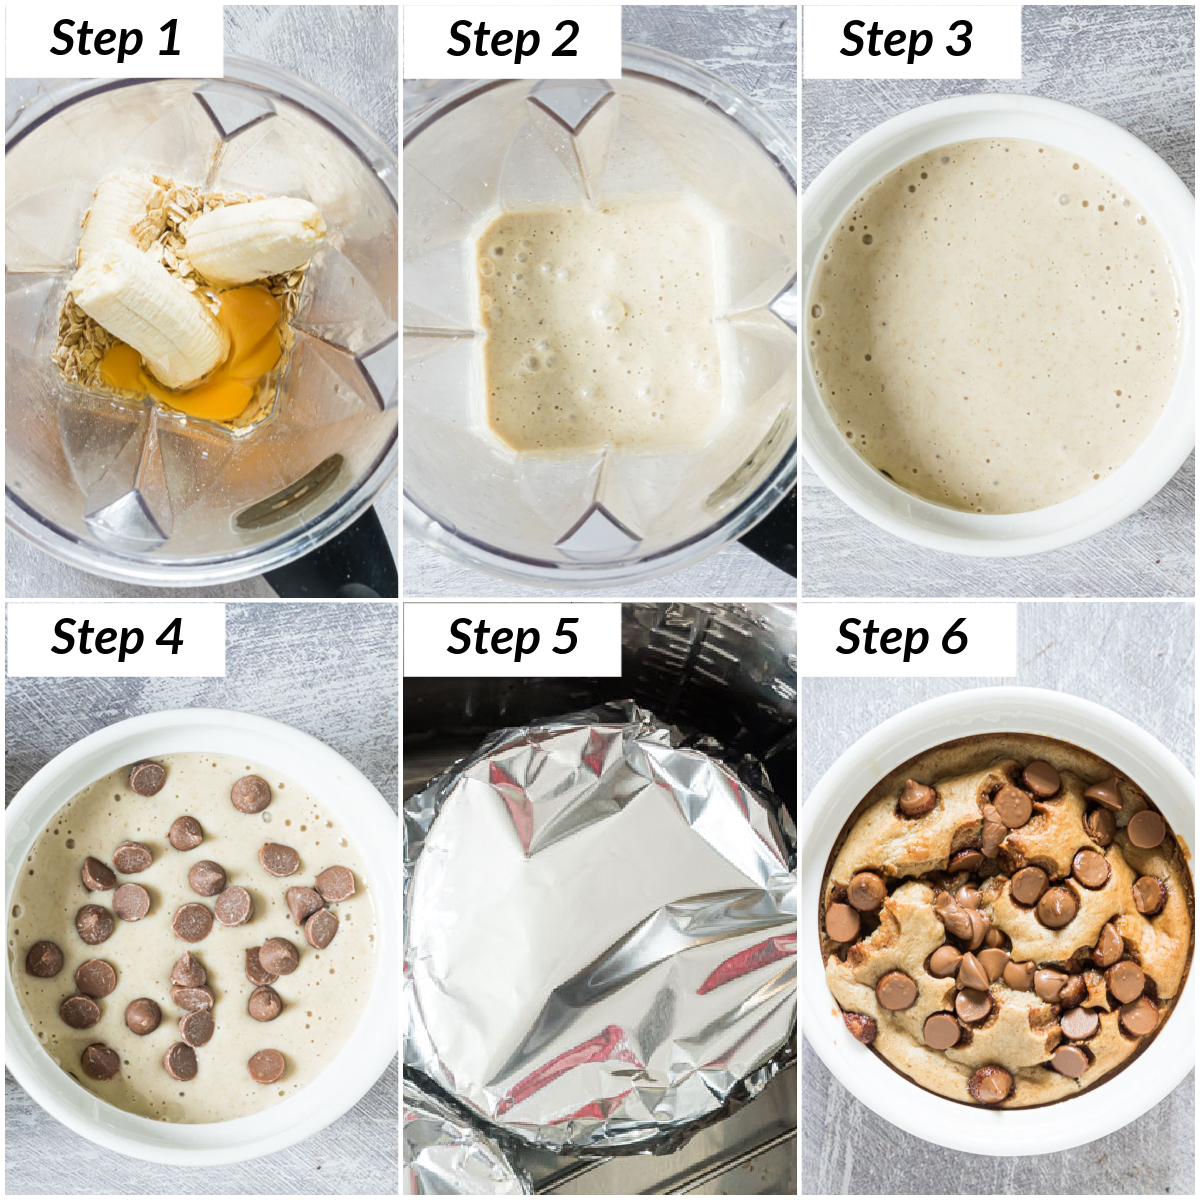 image collage showing the steps for making tiktok baked oats